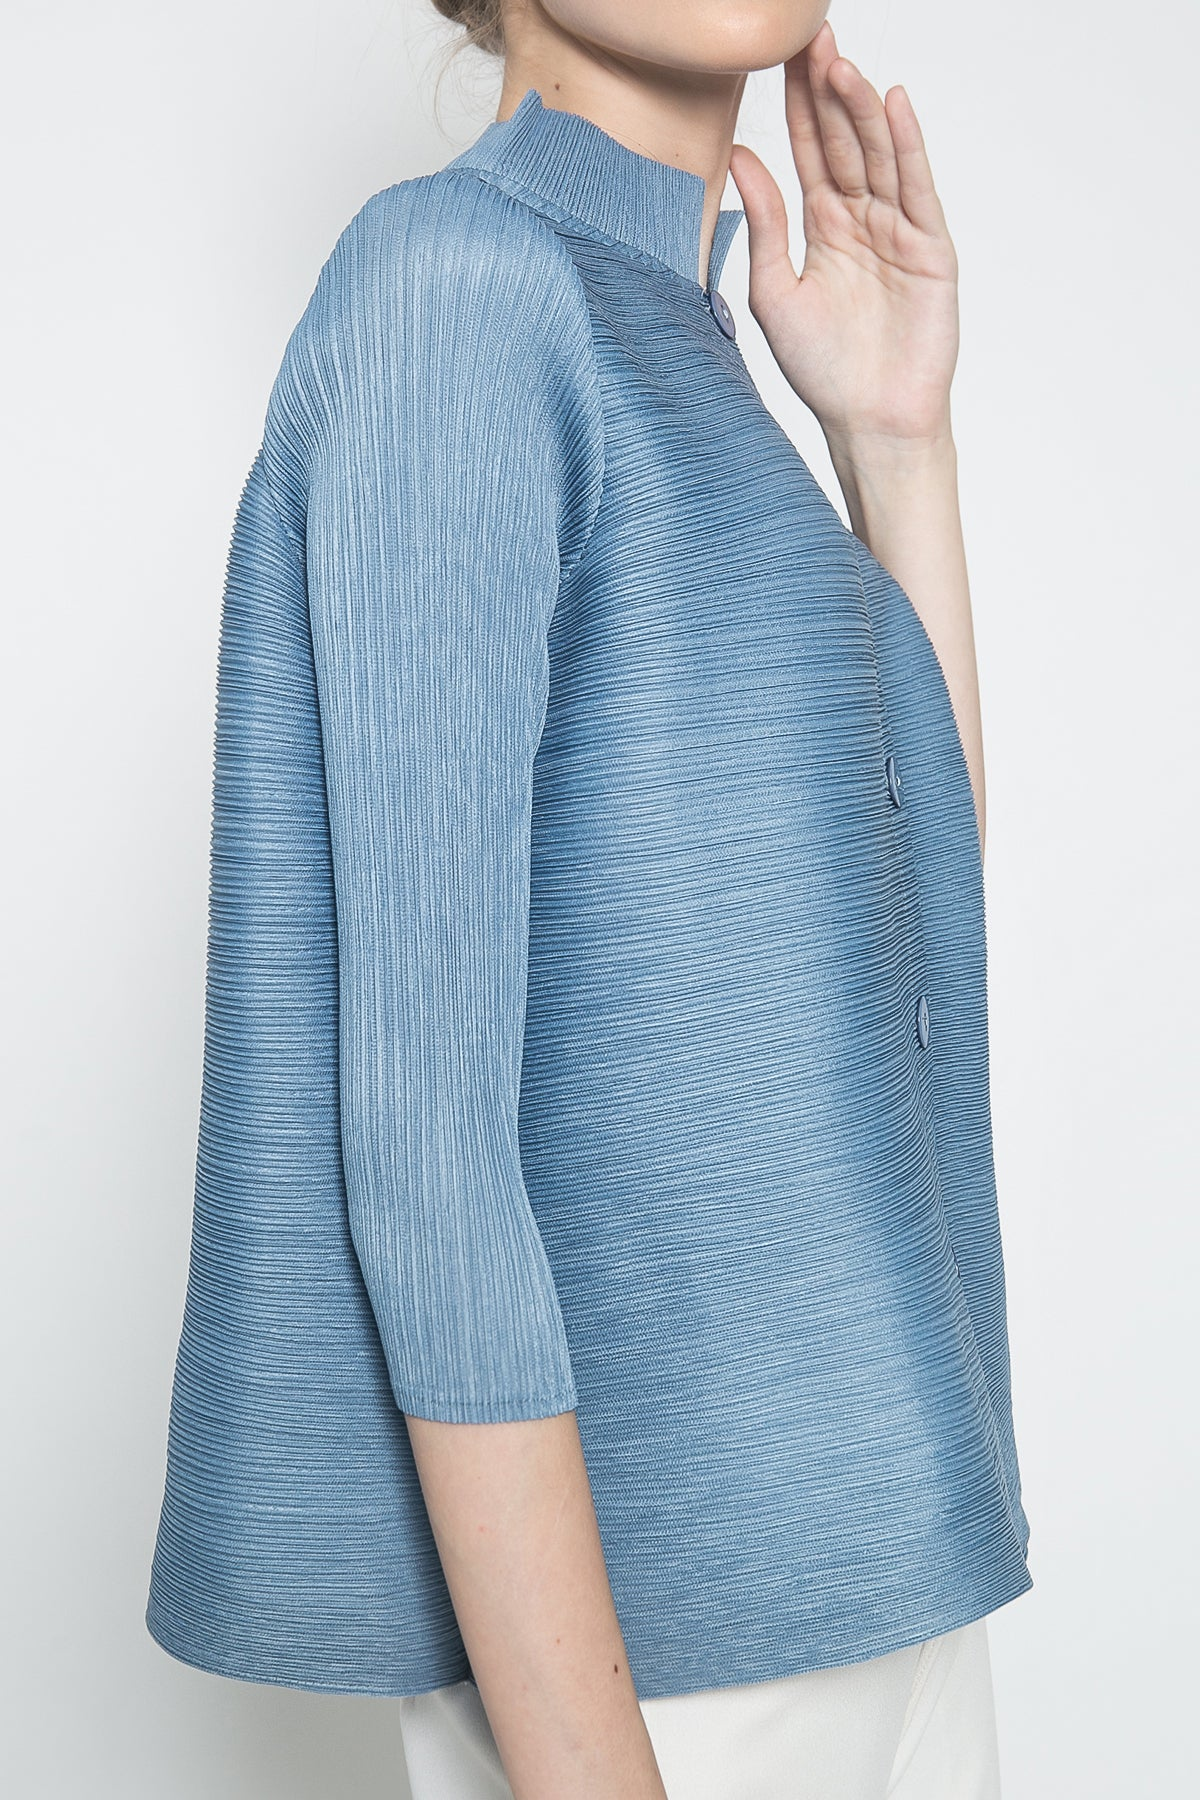 Orge Top in Baby Blue